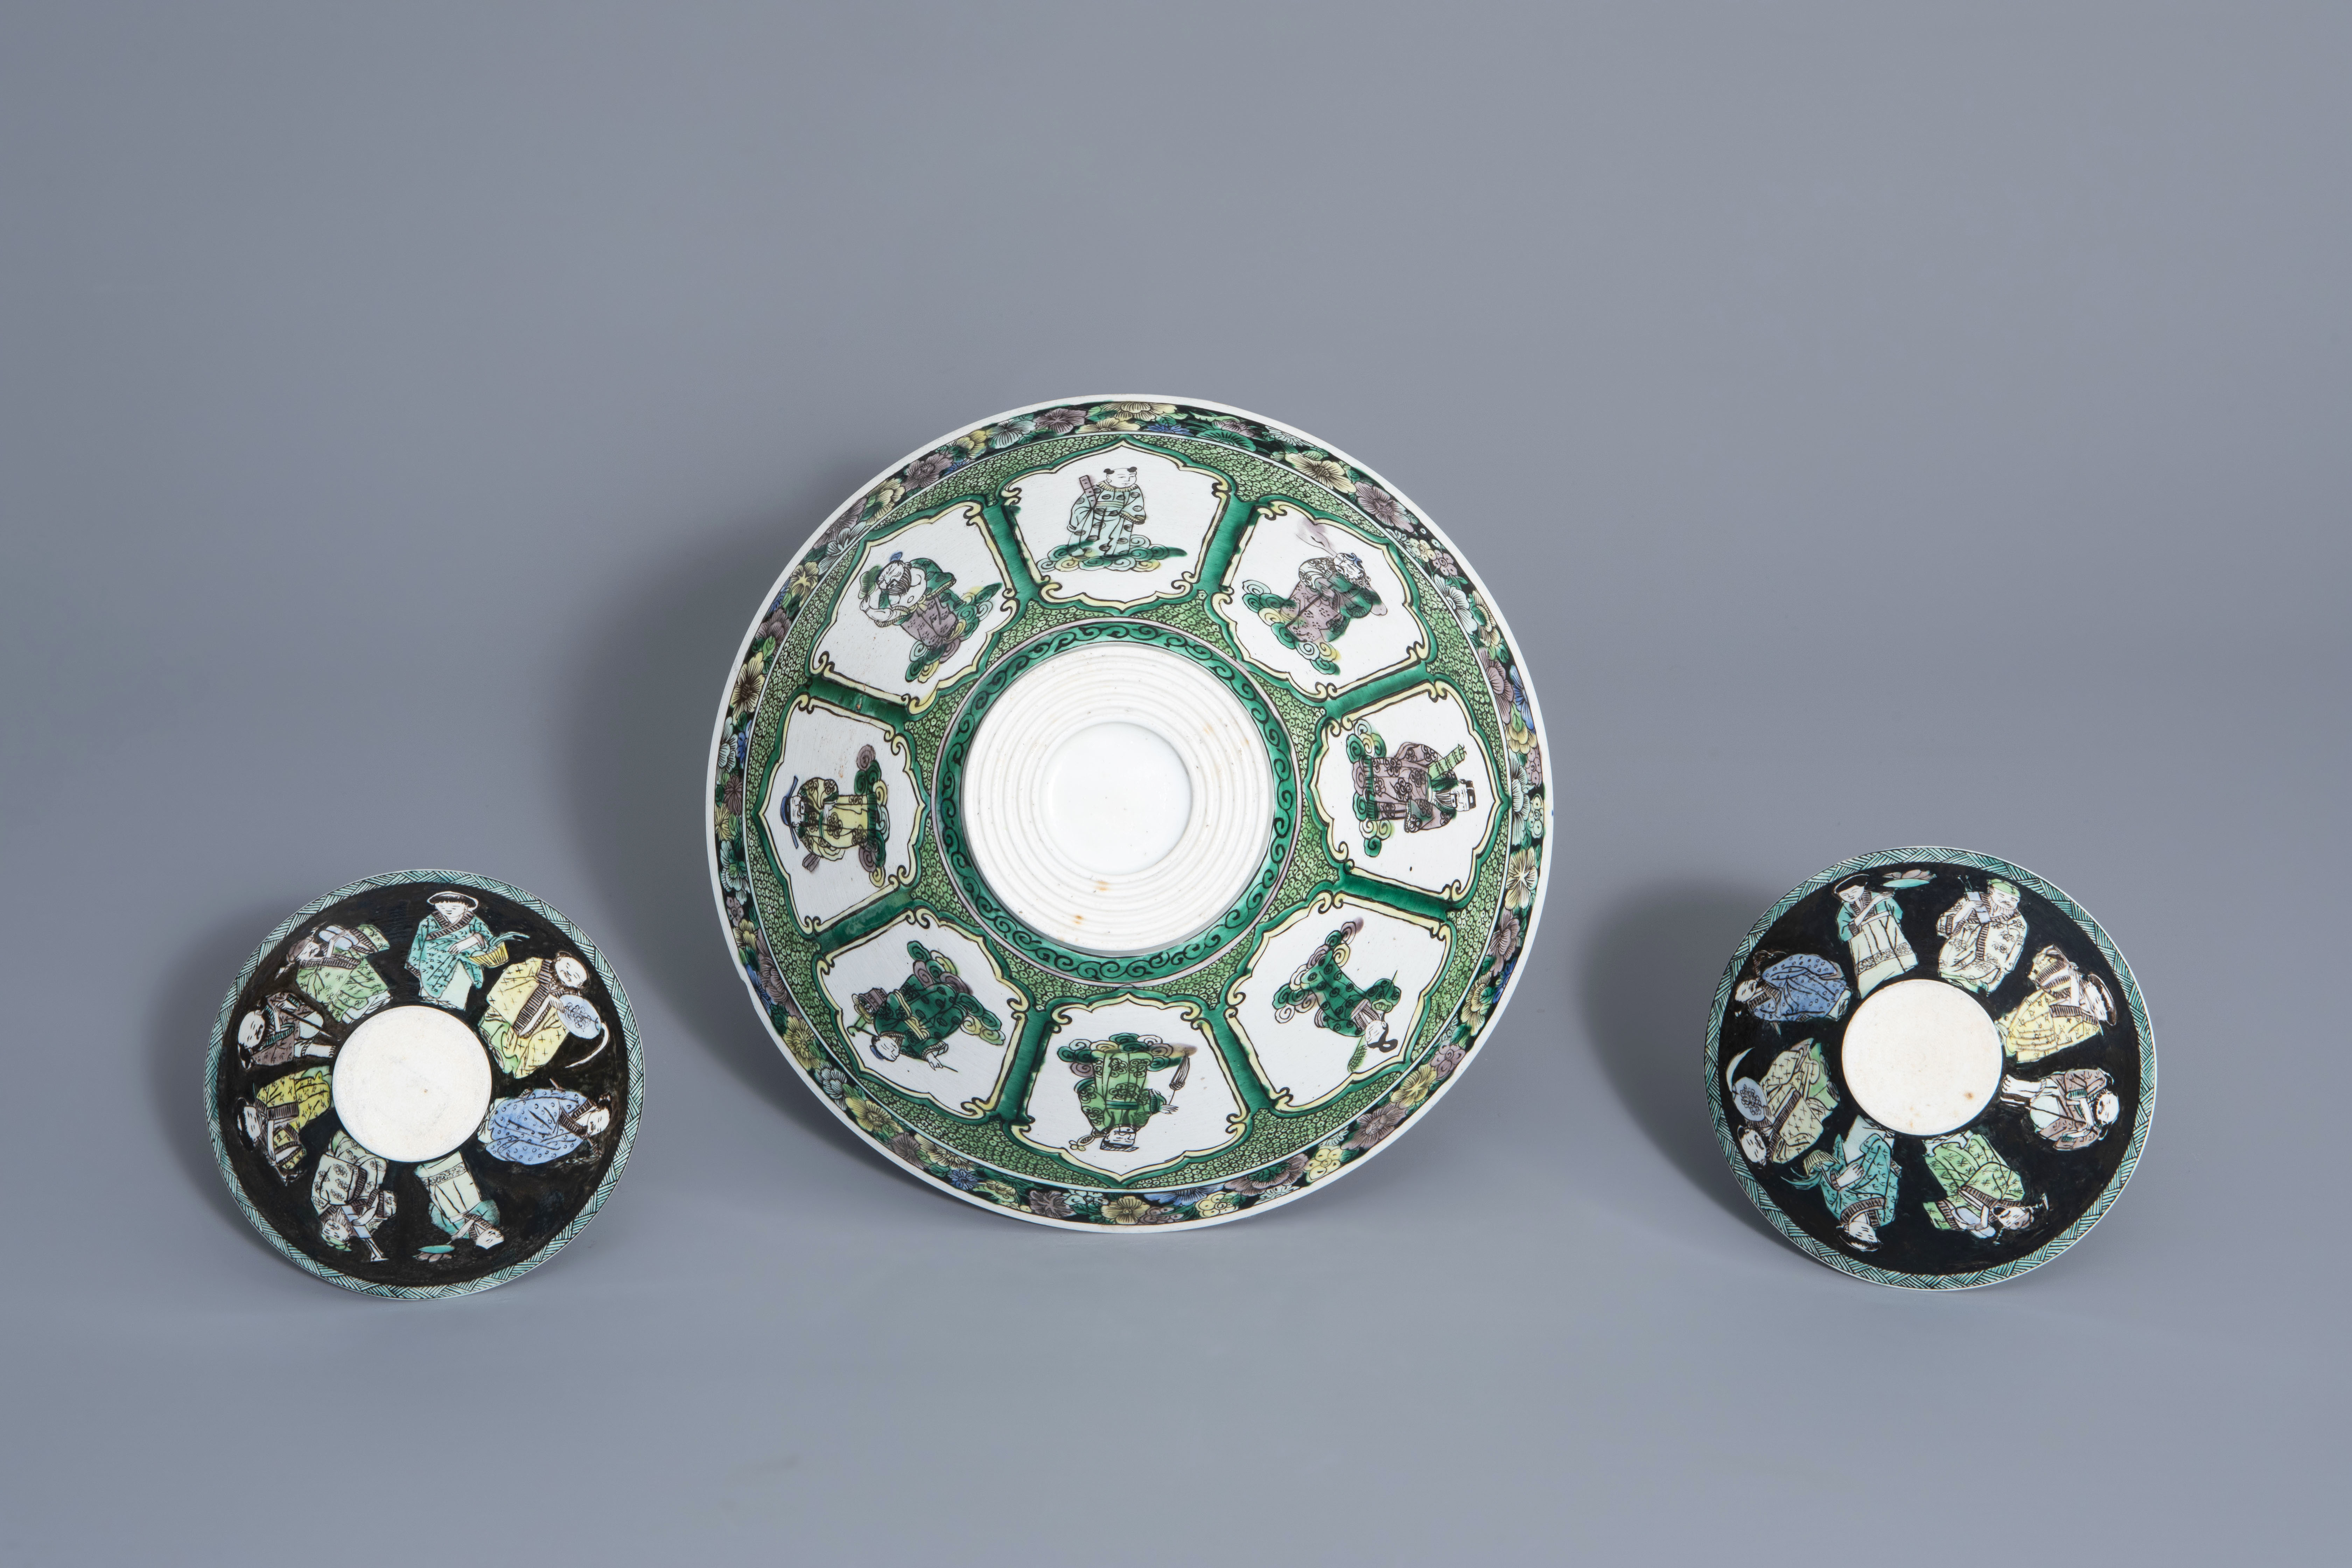 Three Chinese verte biscuit bowls with figurative design, Republic, 20th C. - Image 7 of 7